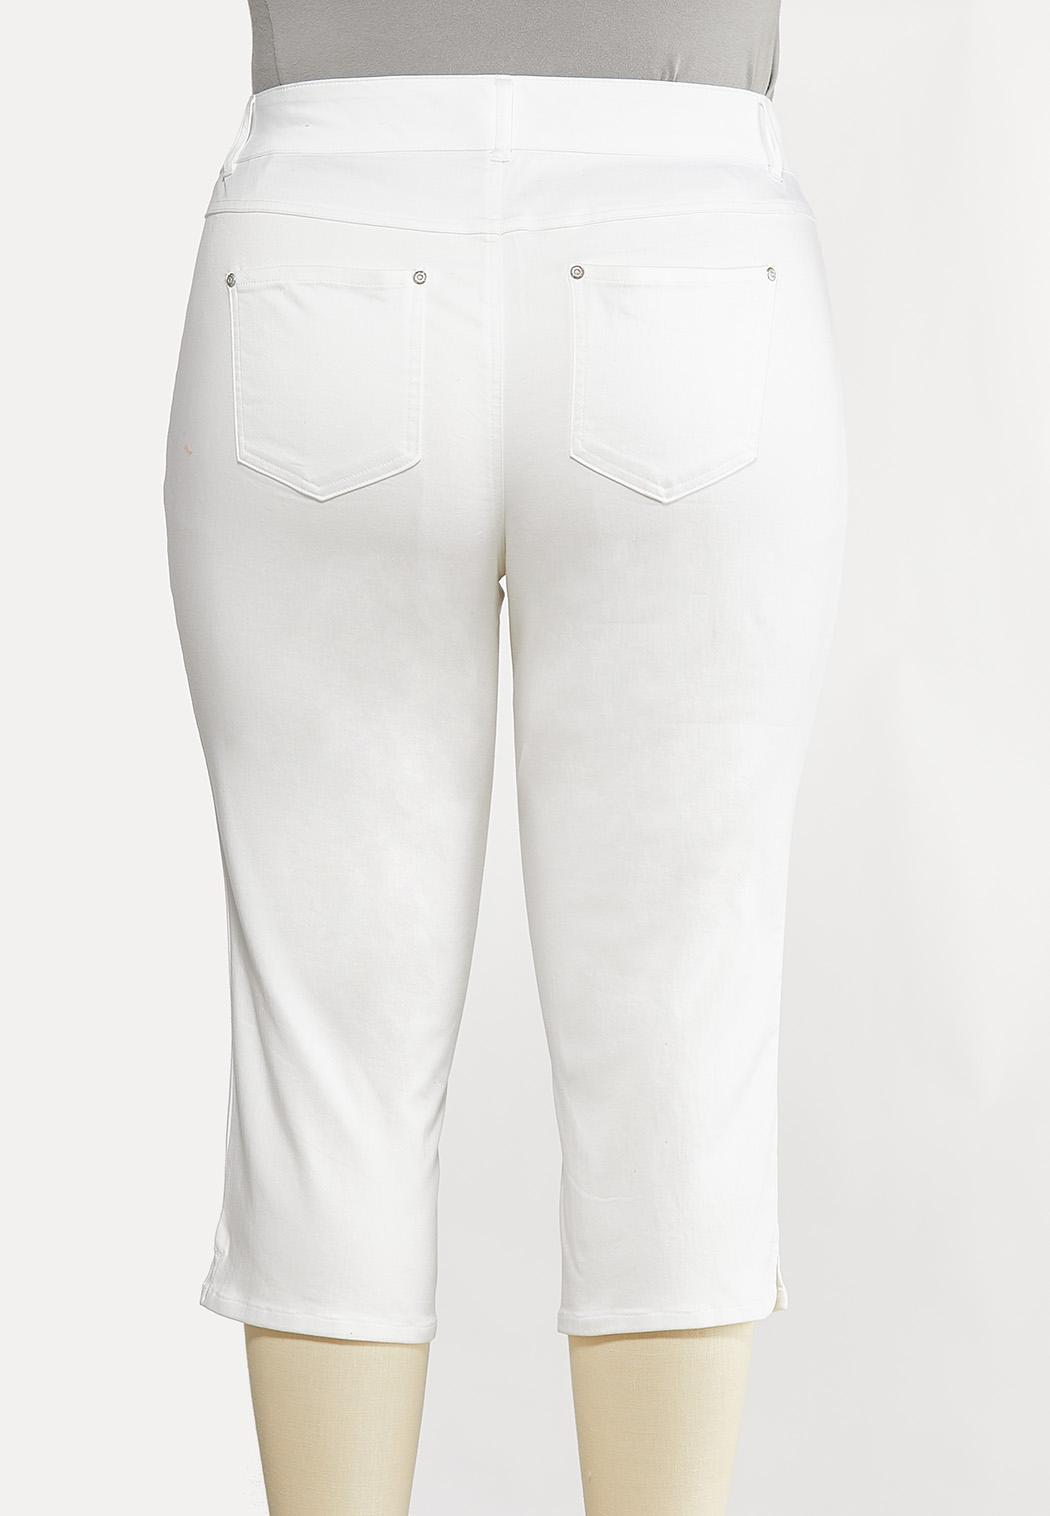 Plus Size Cropped White Skinny Jeans (Item #44157191)